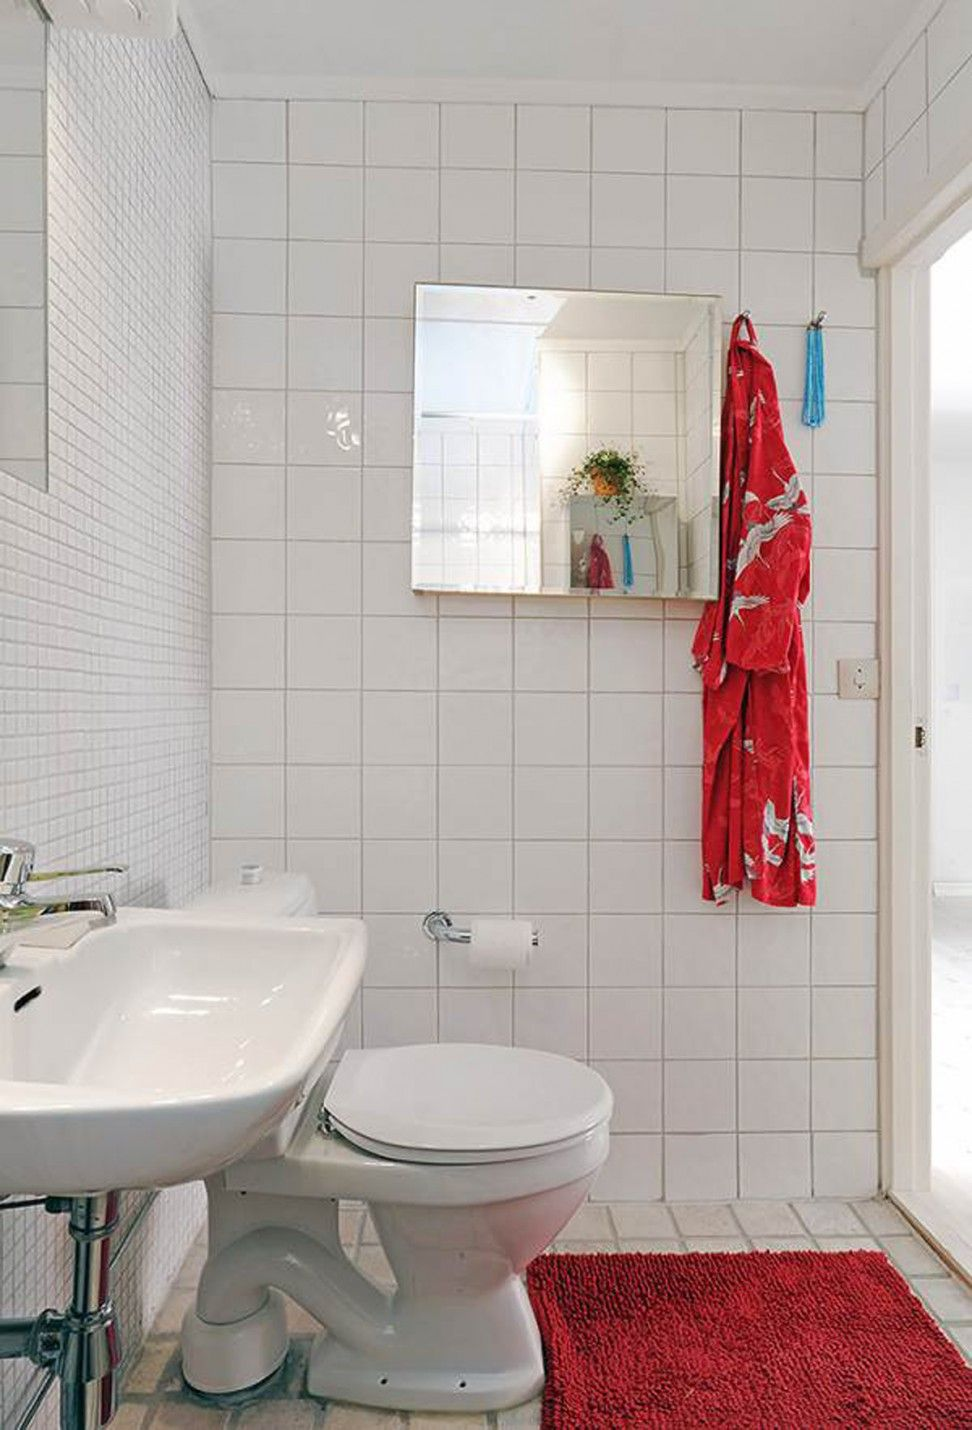 interior design ideas for small bathroom in india | ideas 2017